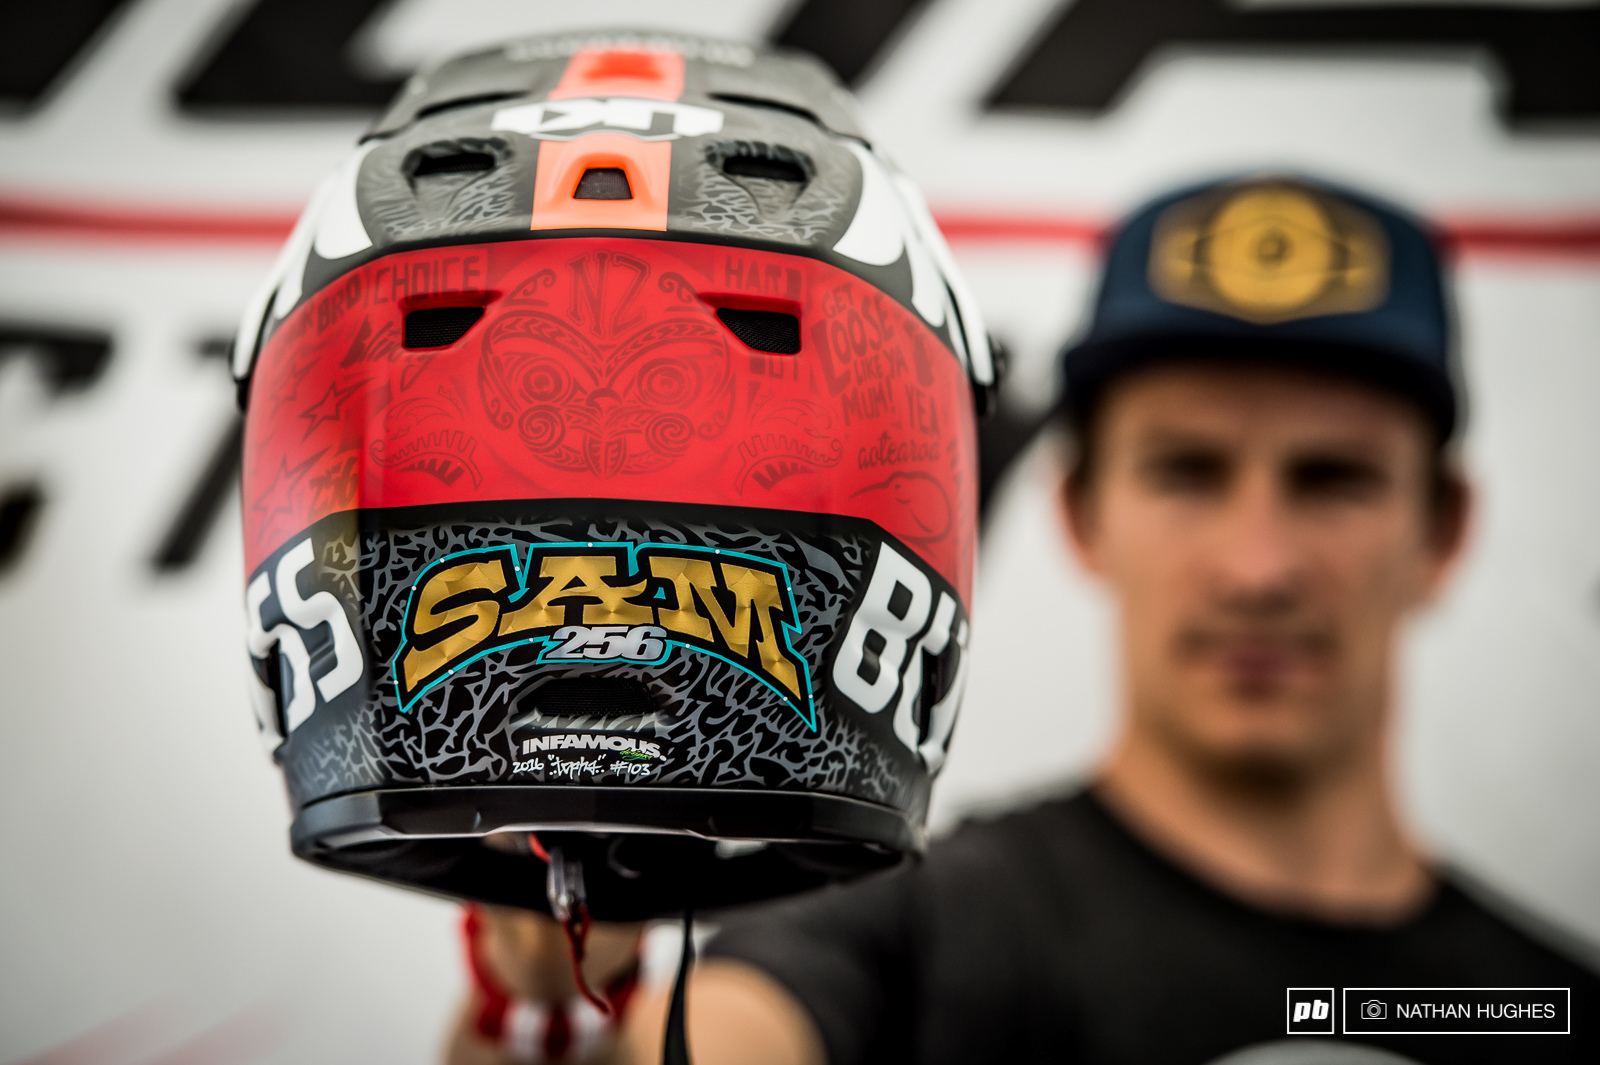 Sam Blenkinsop shows off his new paint with some classic Kiwi sayings and Mauri artwork.